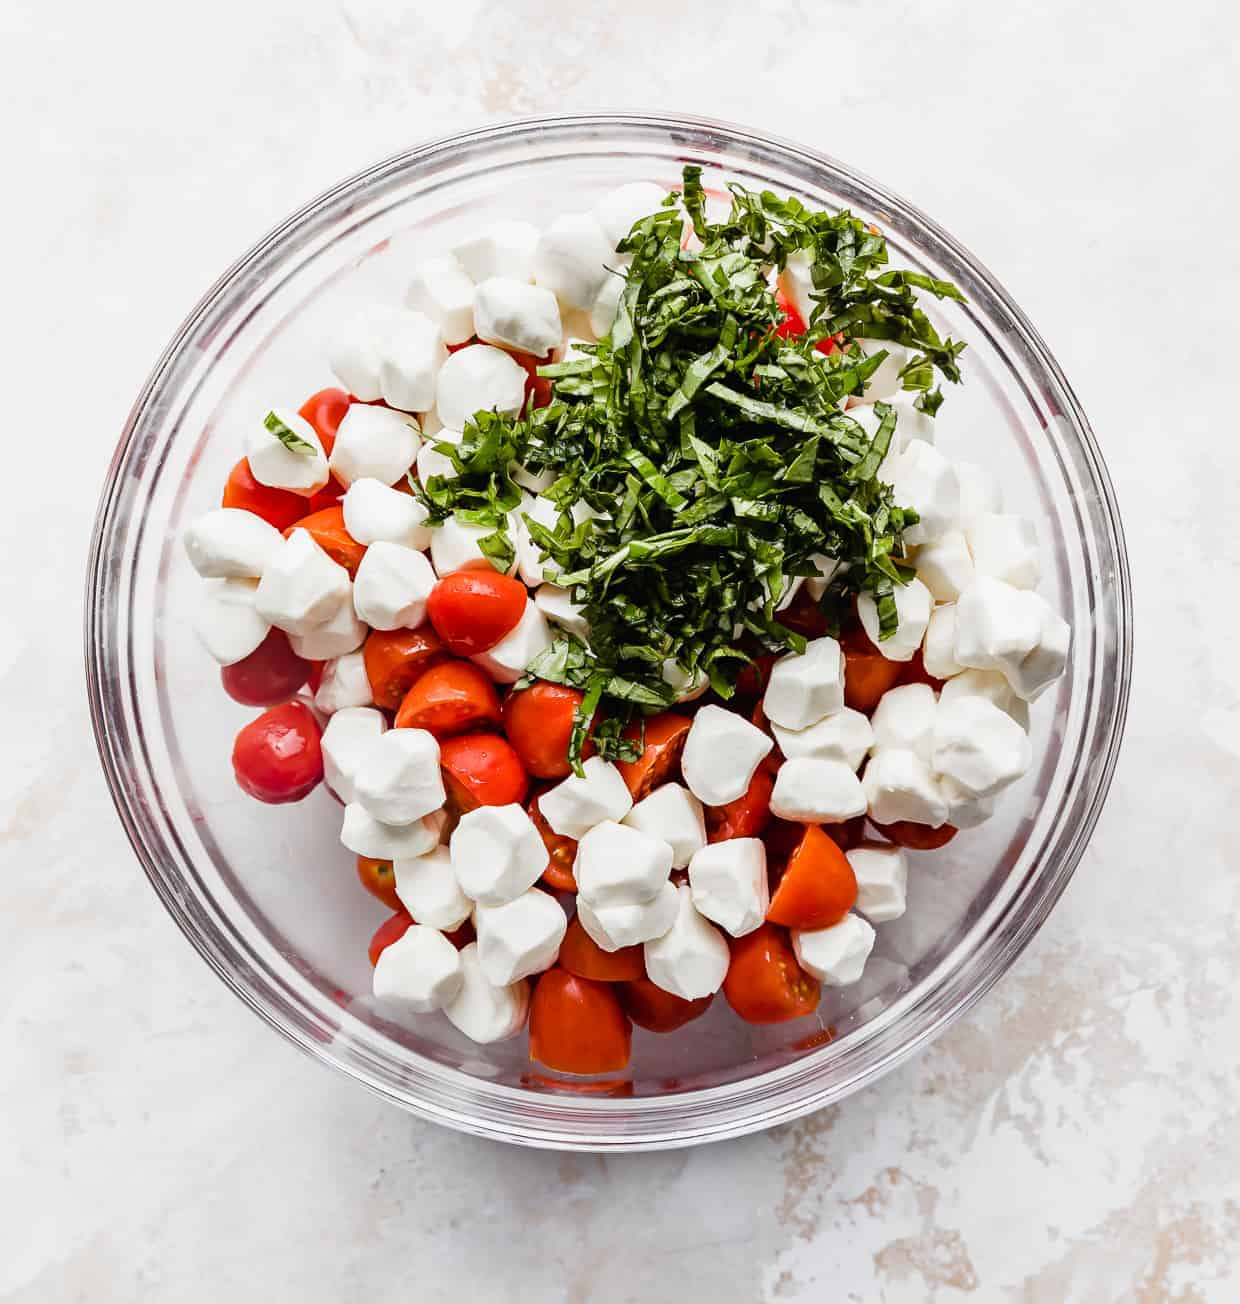 A glass bowl with sliced cherry tomatoes, chopped basil, and mozzarella balls.